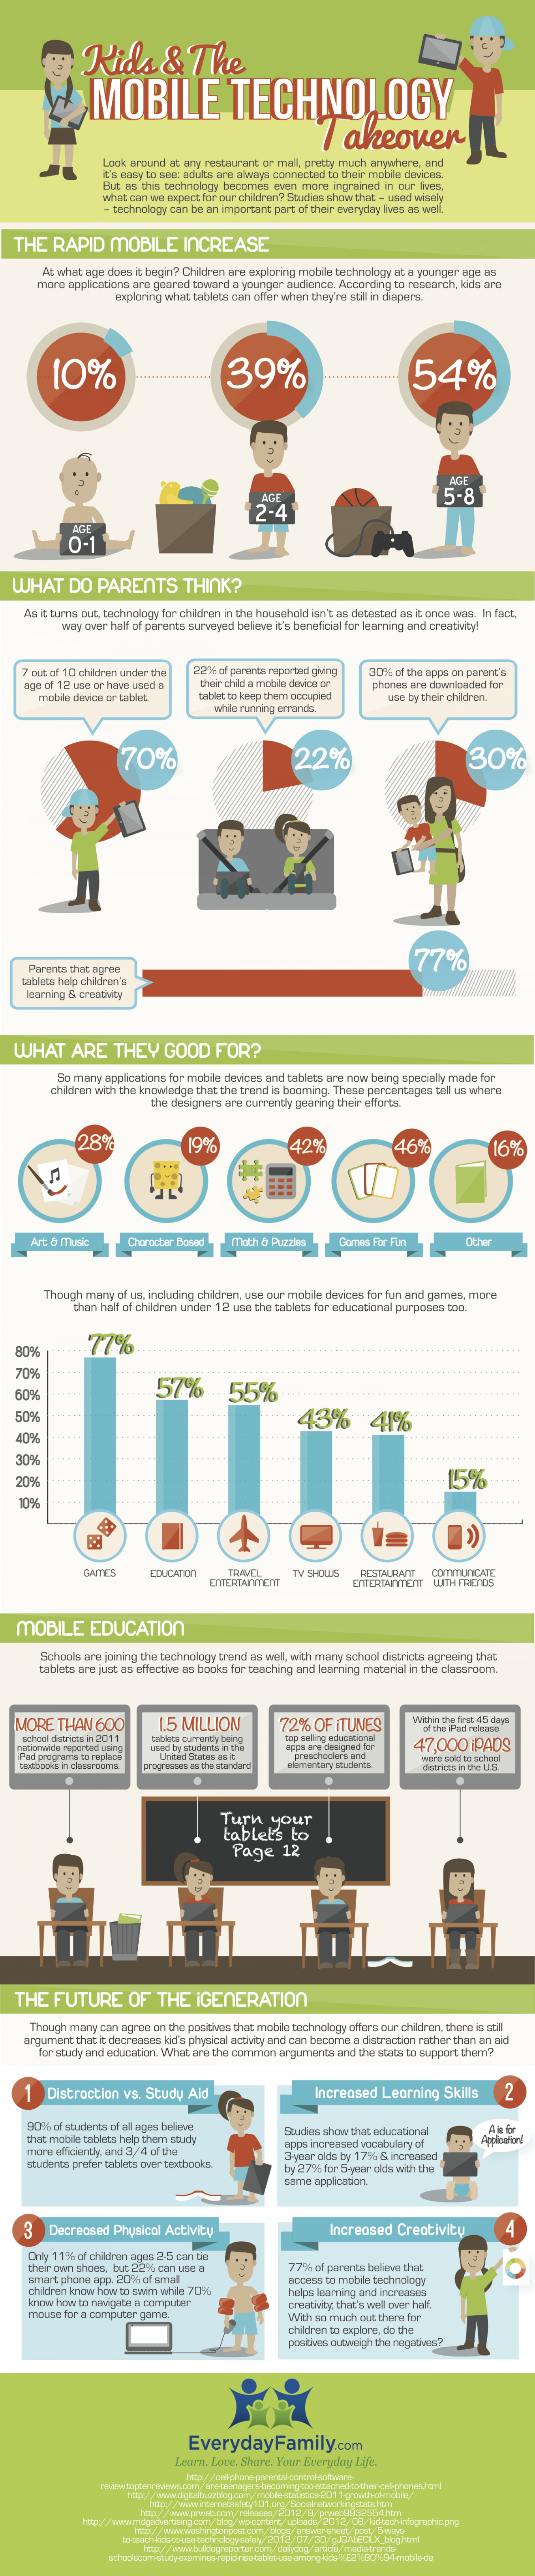 Kids & Mobile Technology Infographic